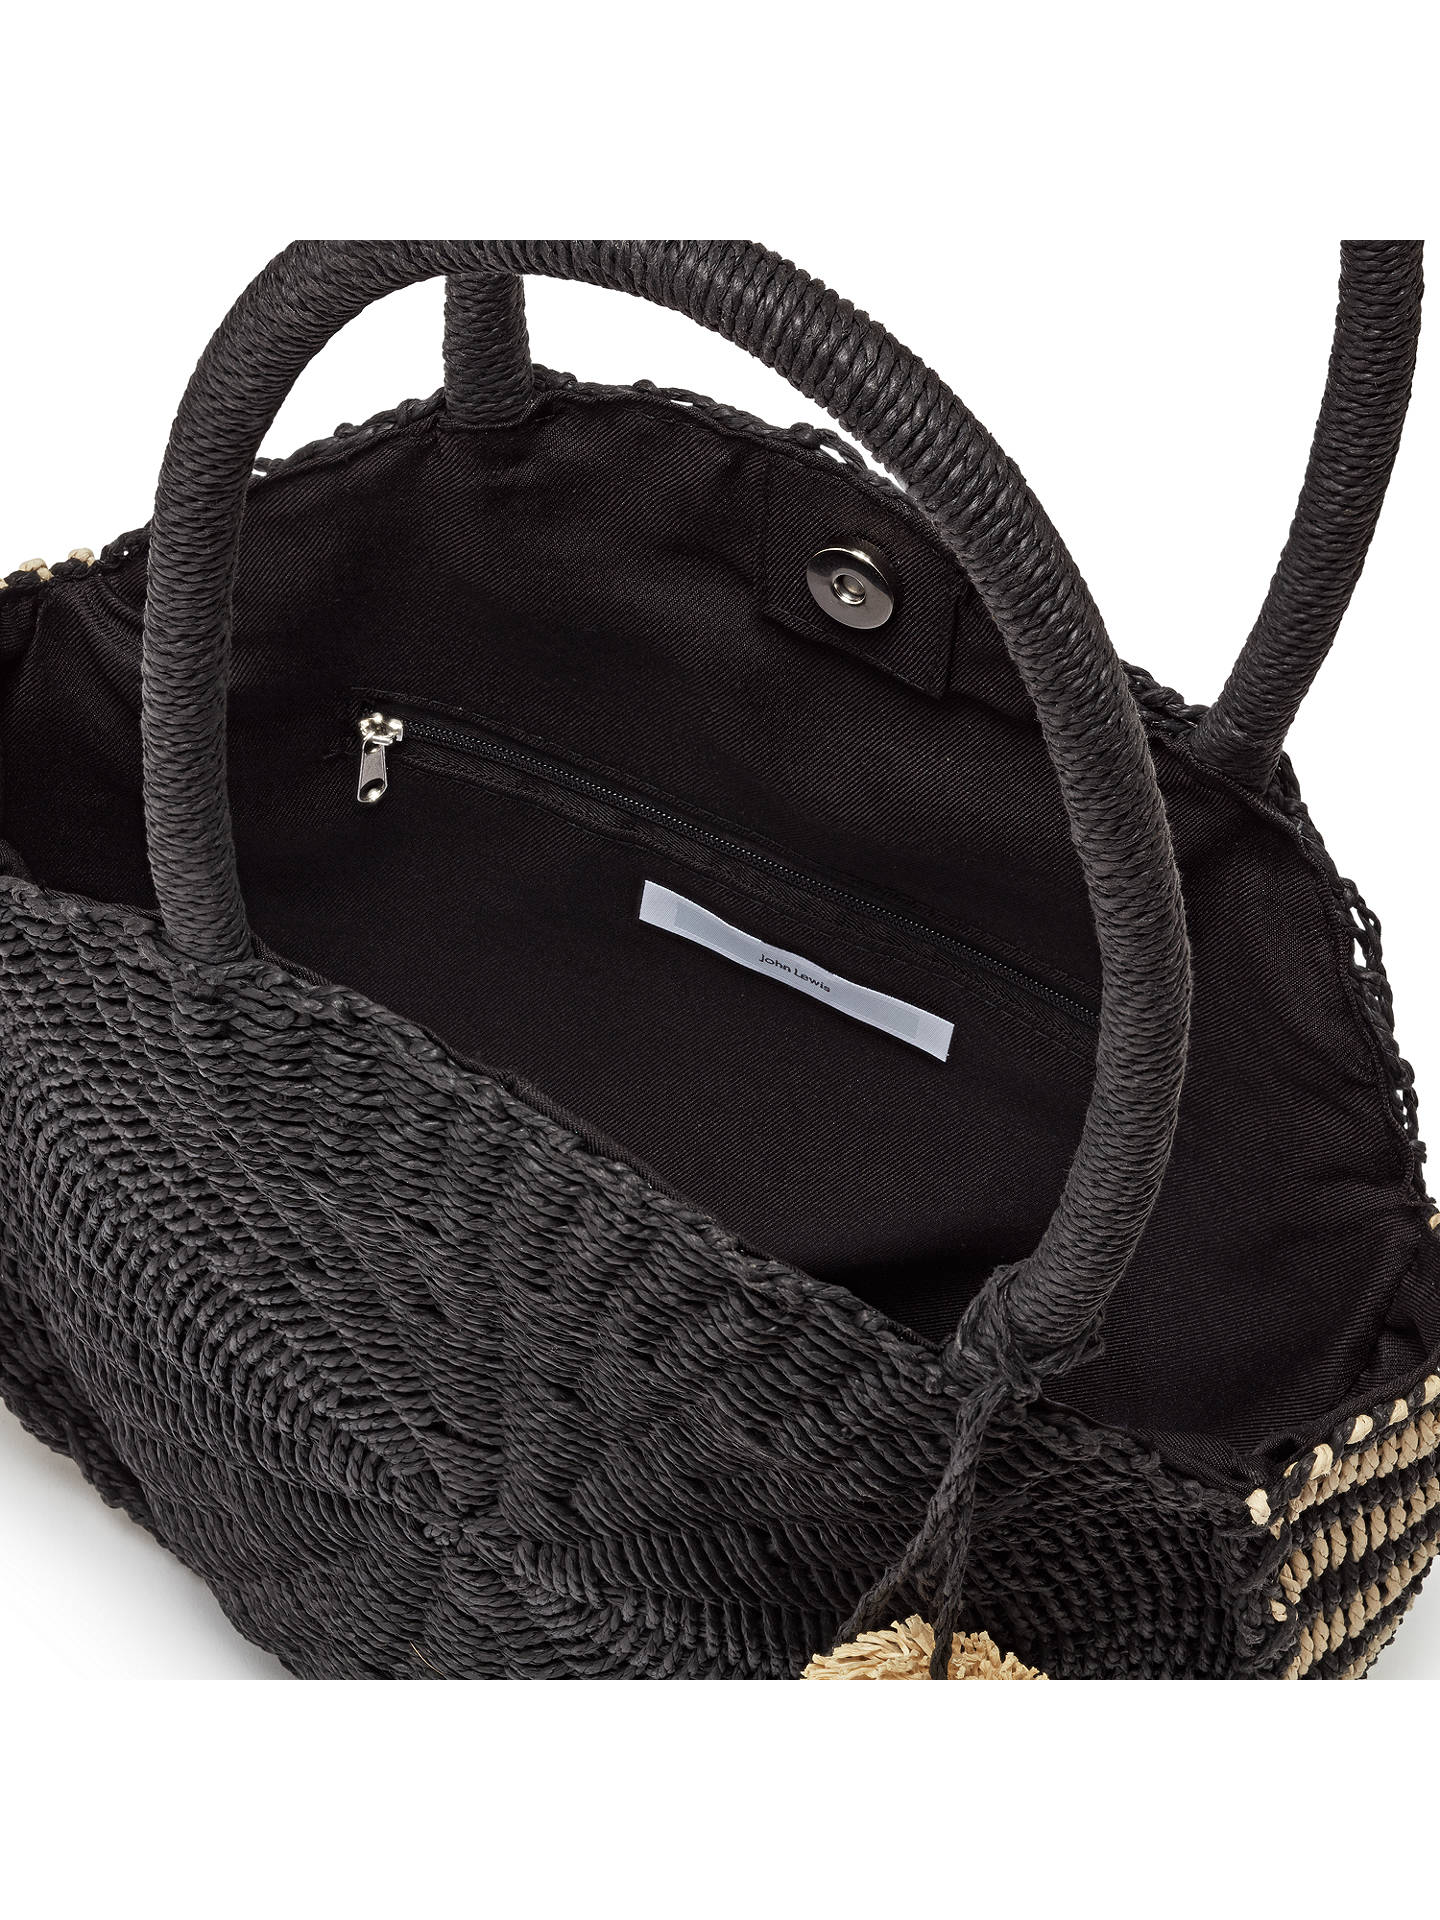 BuyJohn Lewis & Partners Straw Circle Grab Bag, Black/Cream Online at johnlewis.com